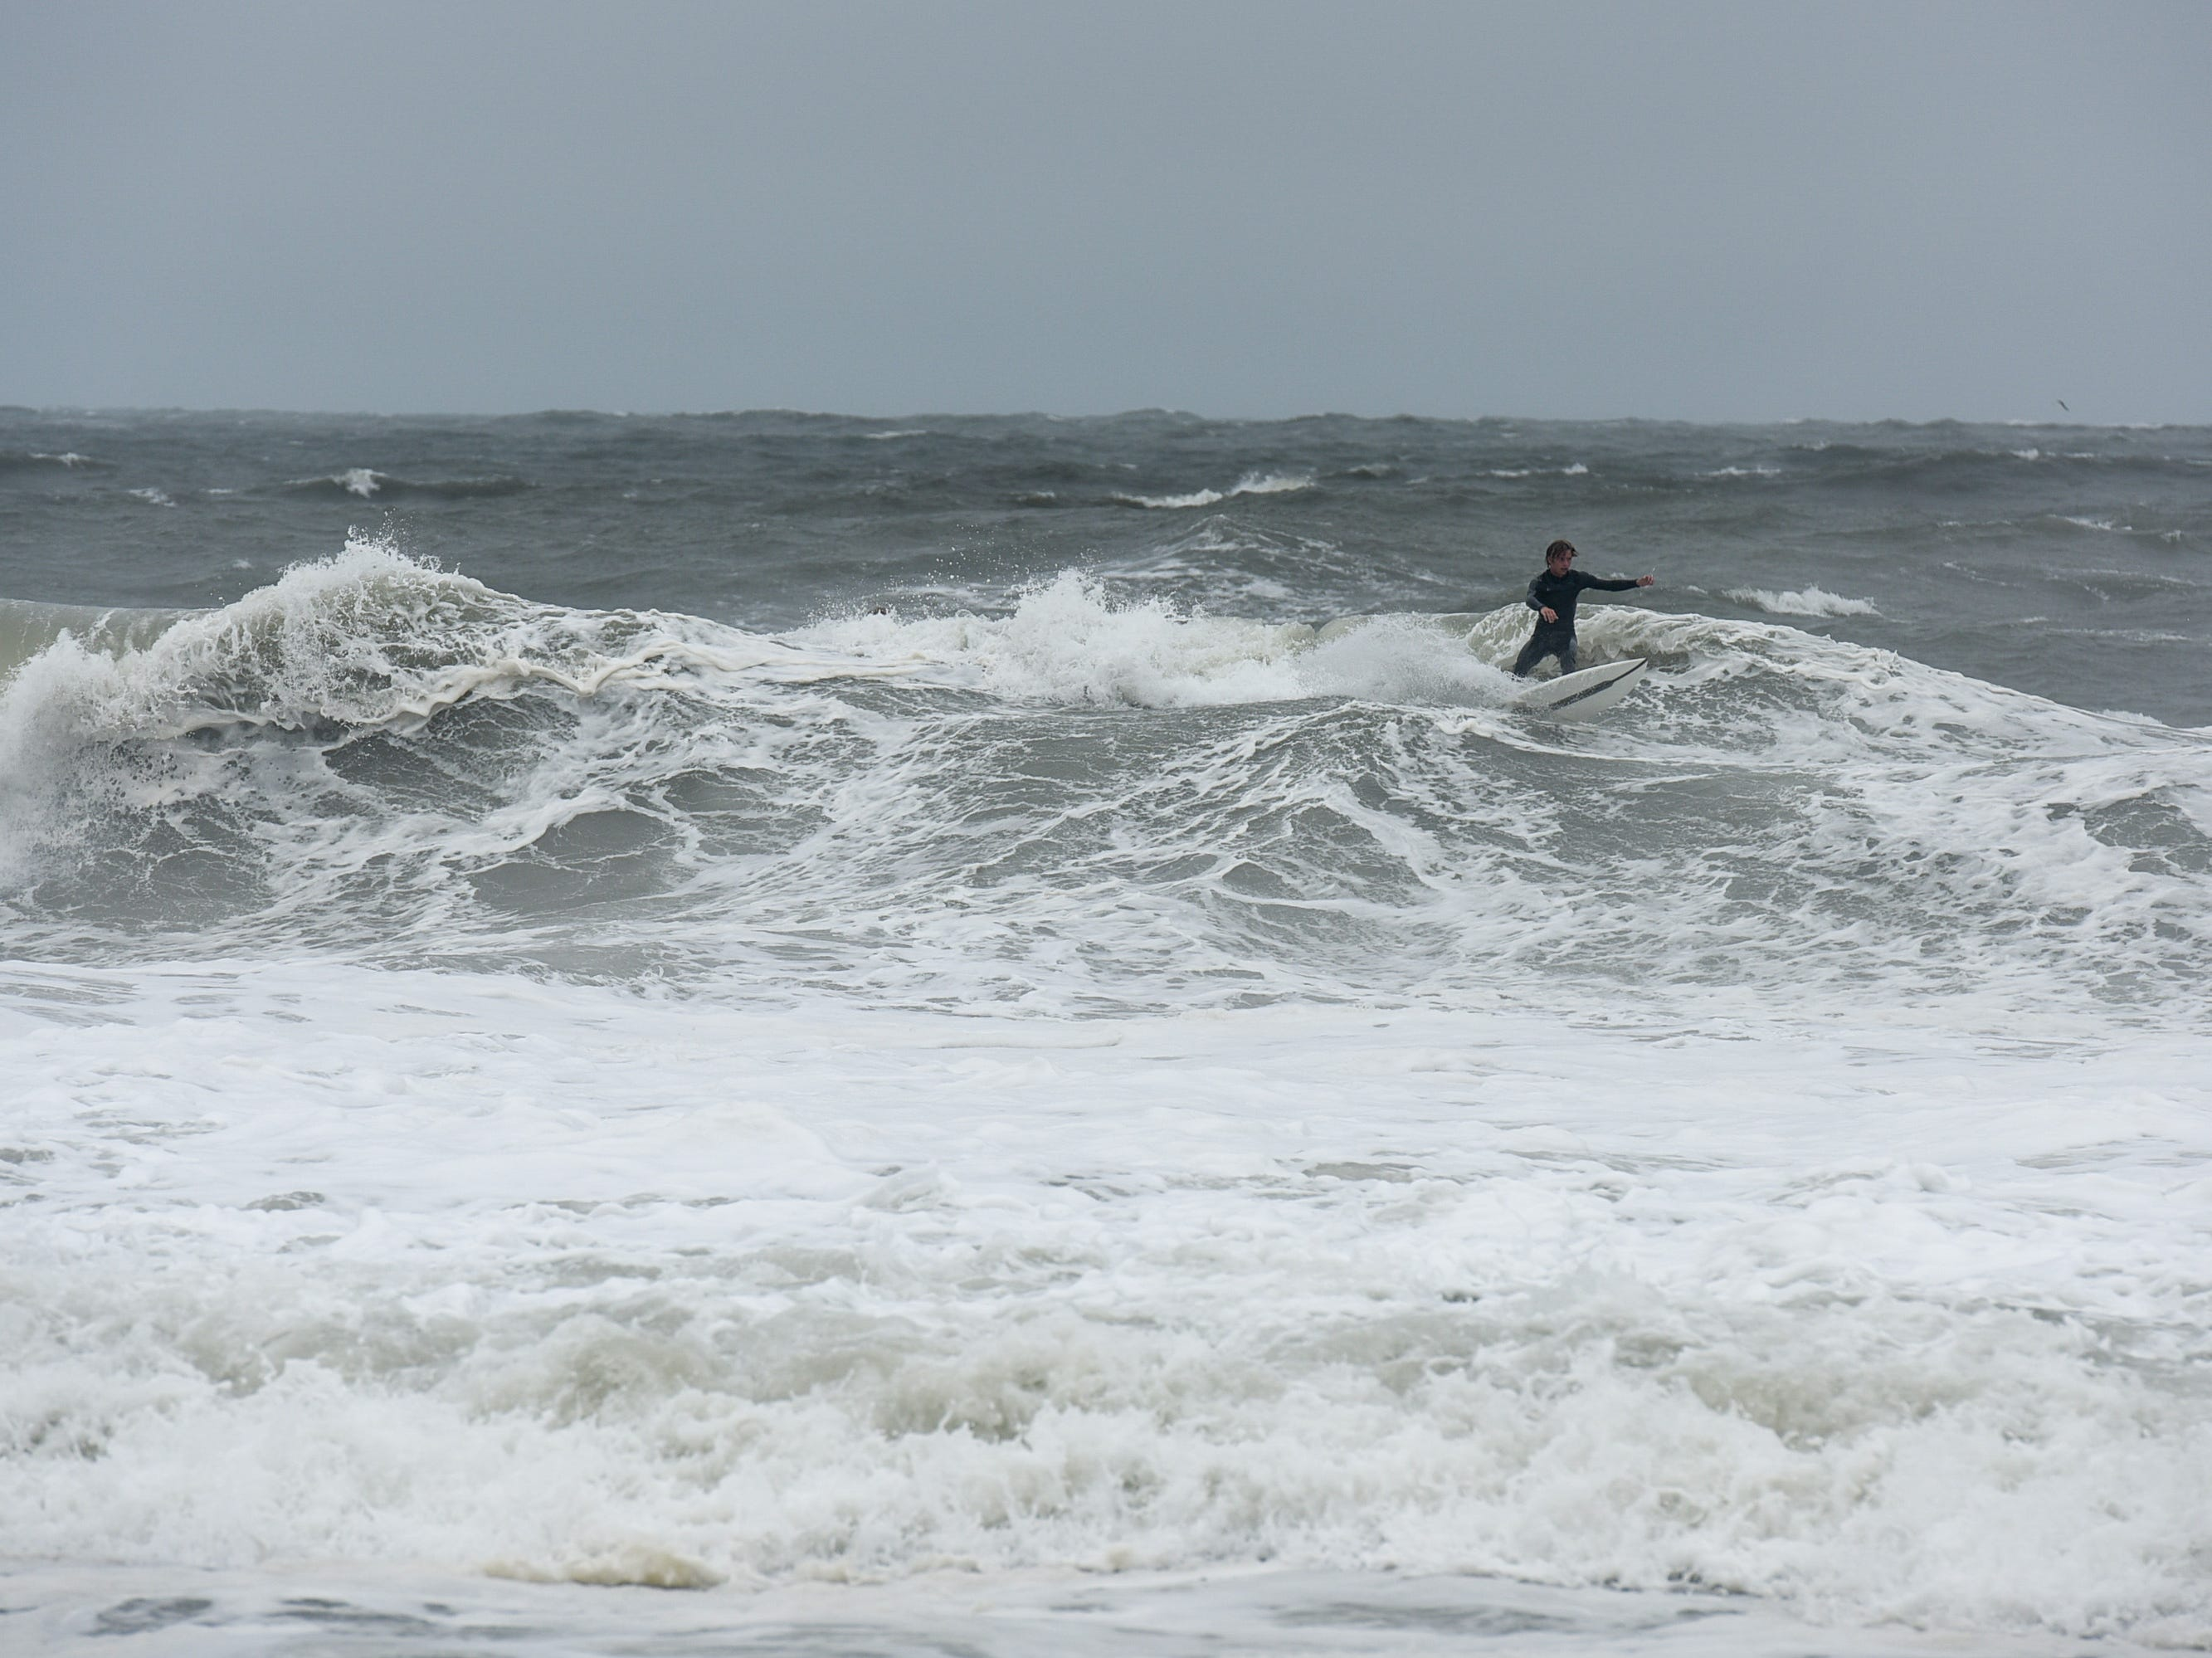 A surfer catches a wave at the Ocean City inlet. The area experienced mild flooding, wind and rough surf on Thursday, Sept 13.